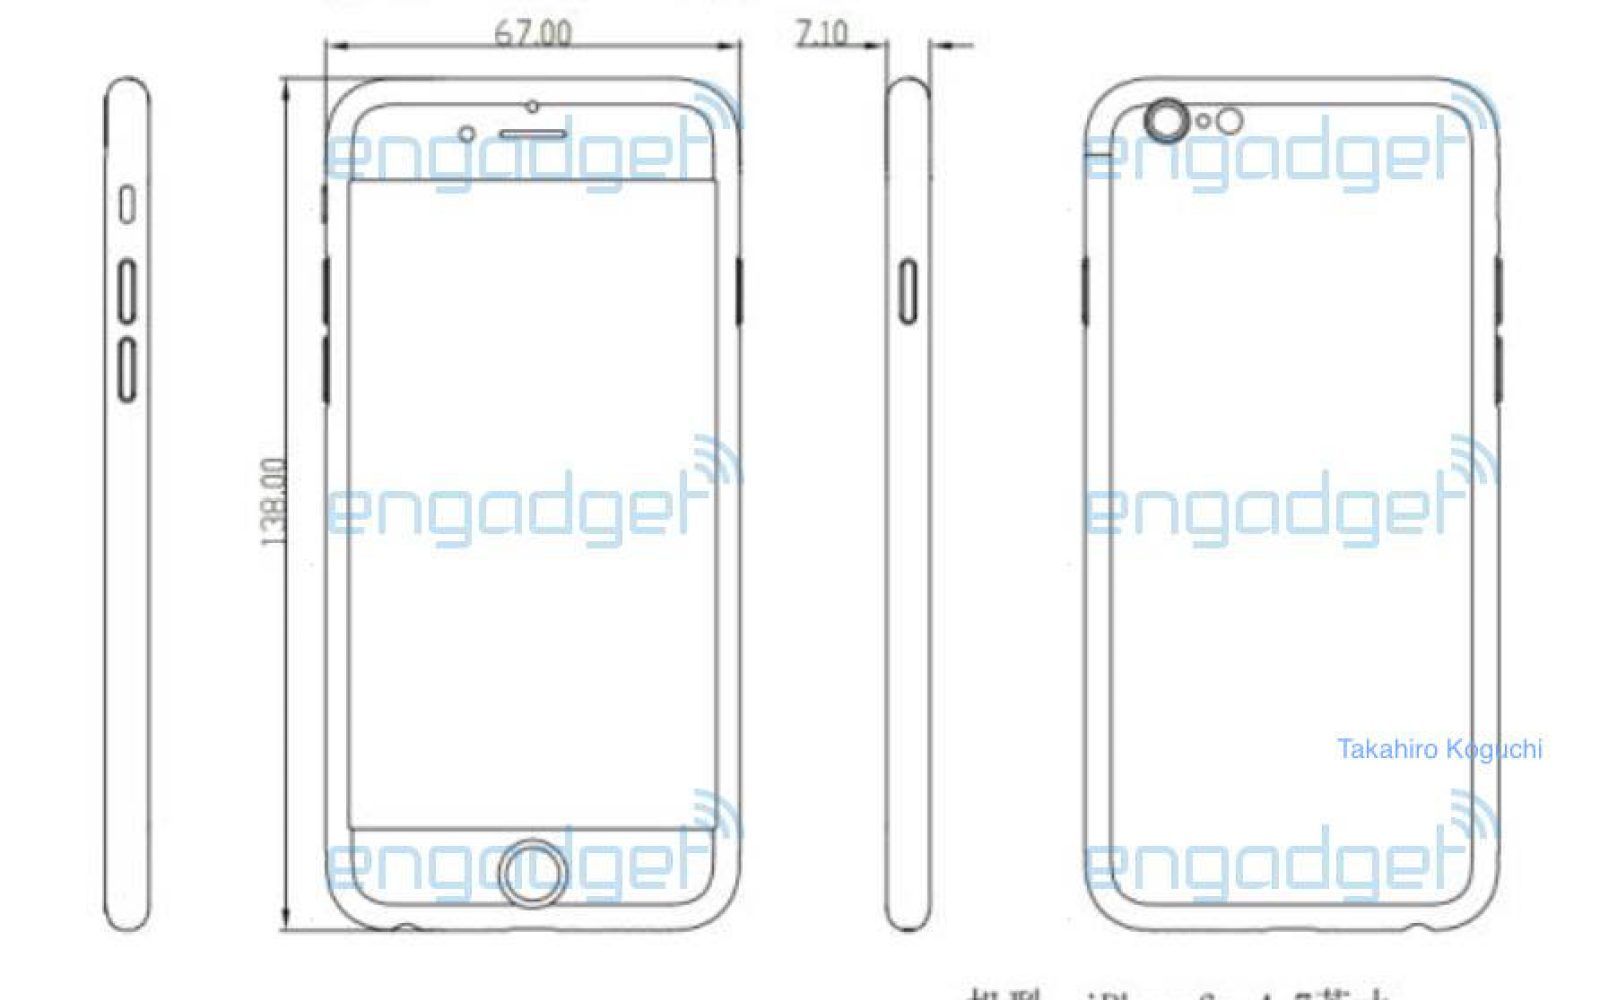 Claimed iPhone 6S schematic matches our report of minimal exterior ...